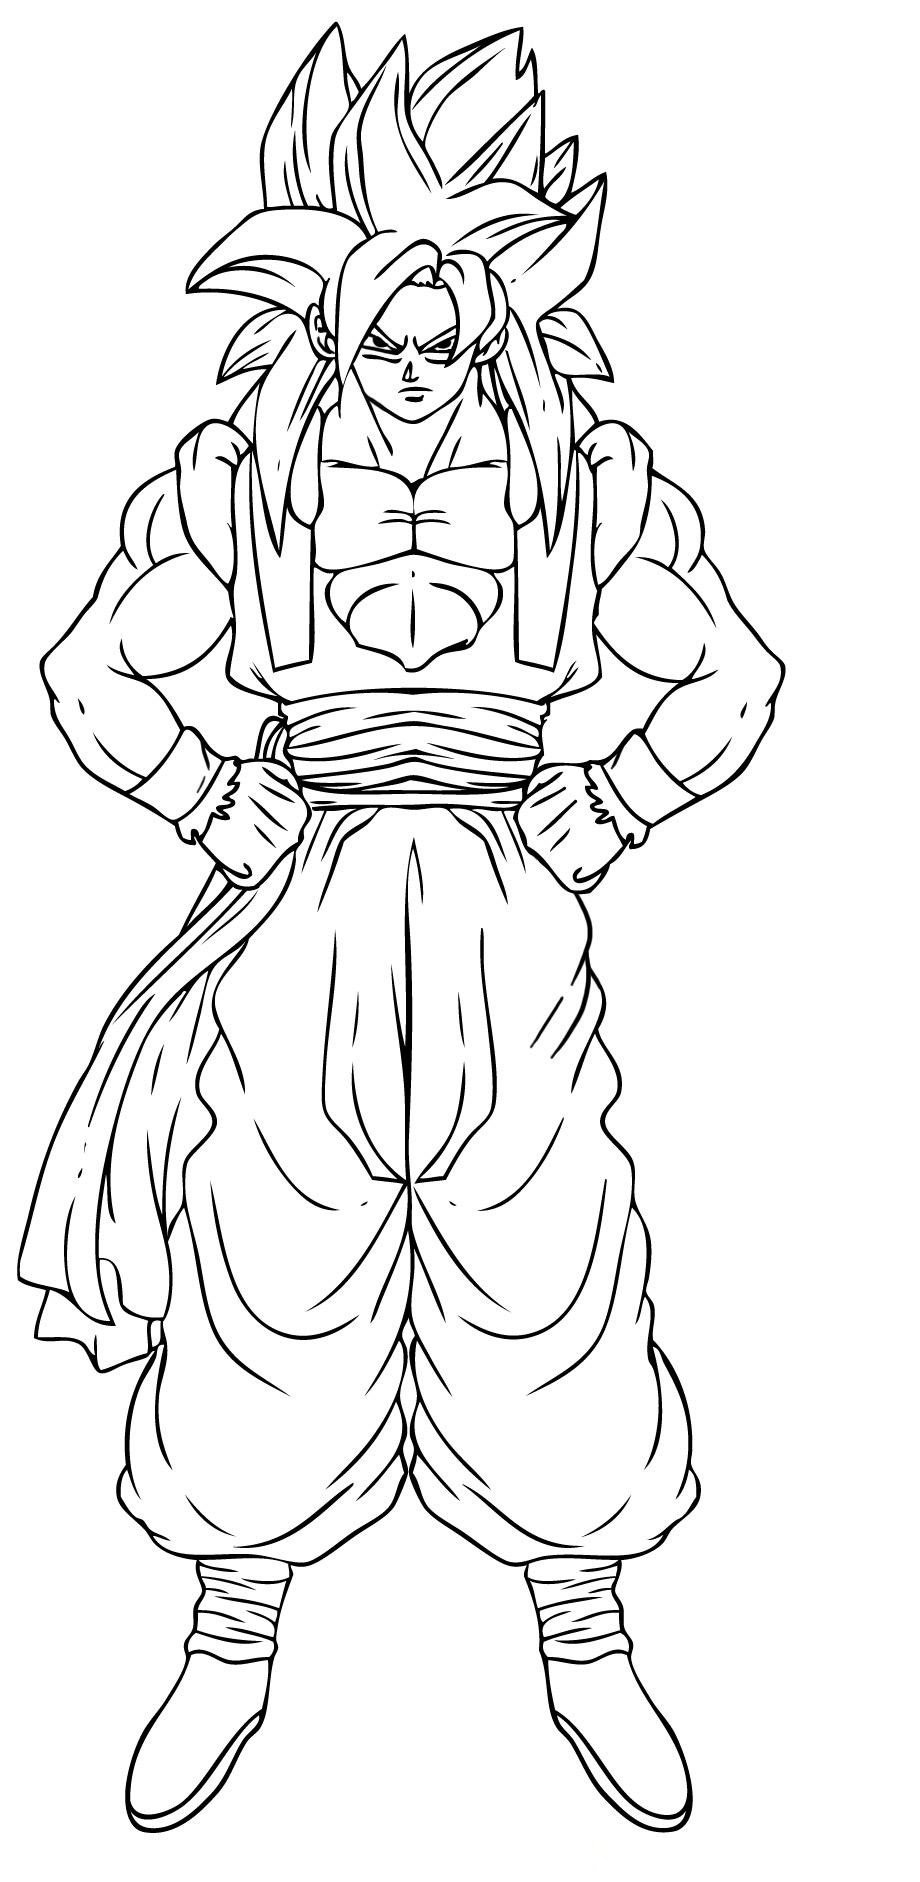 Dragon Ball Z Coloring Pages Goku Super Saiyan 3 Form